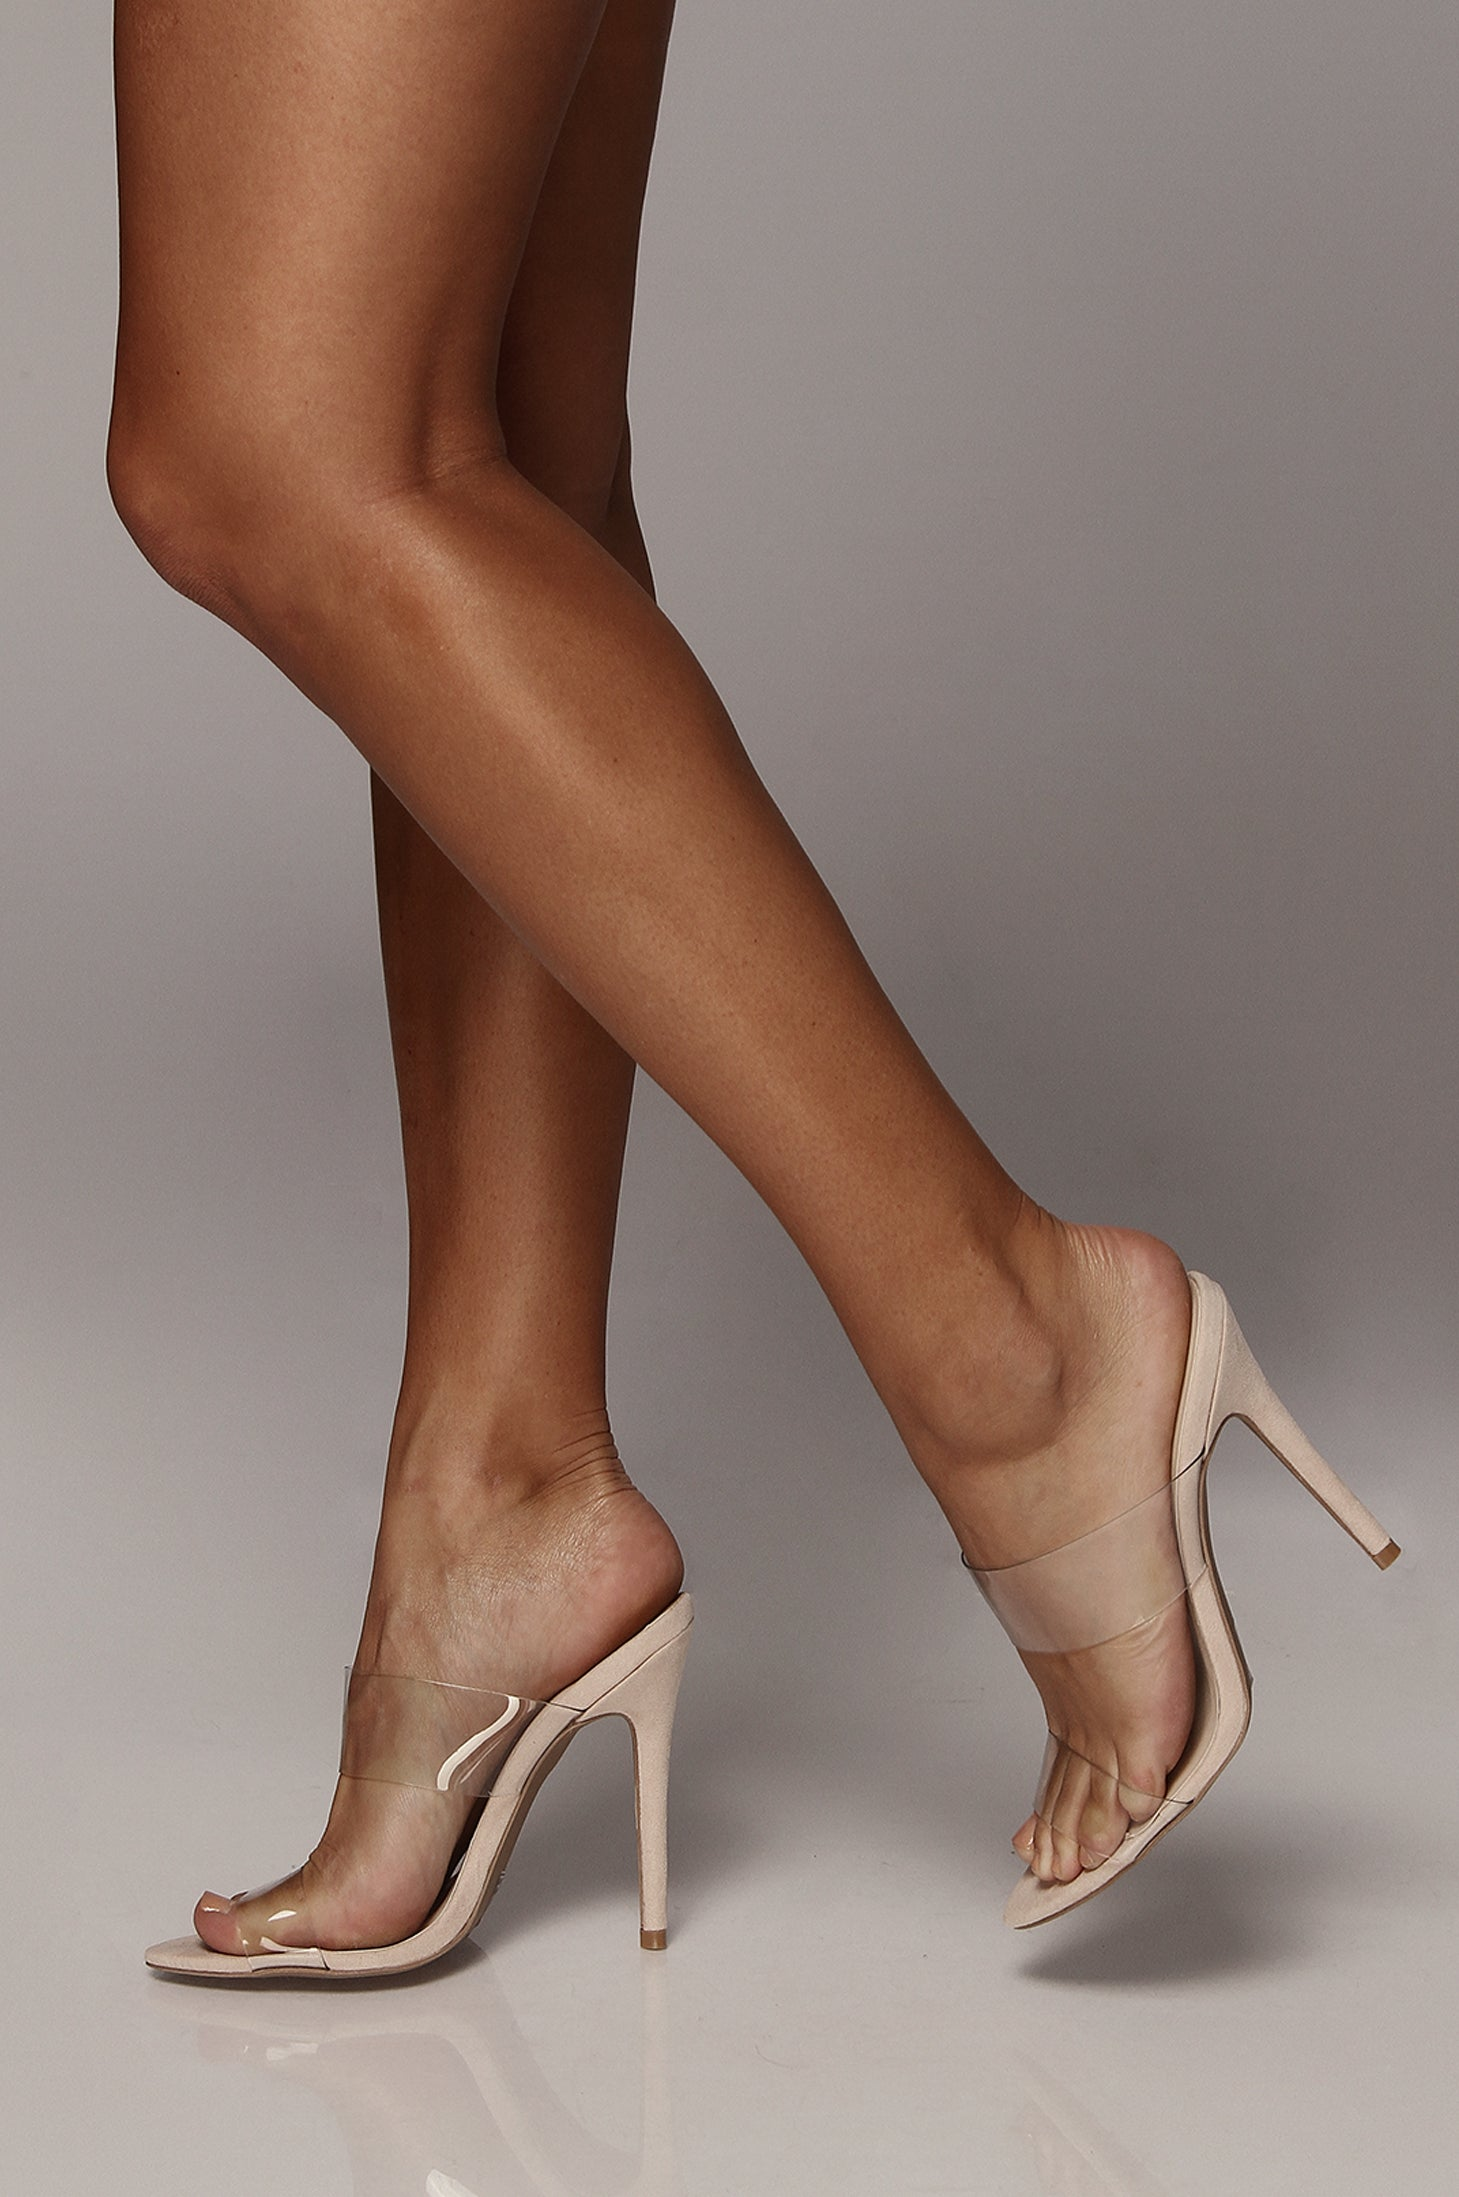 Frasier Blush Clear Heels